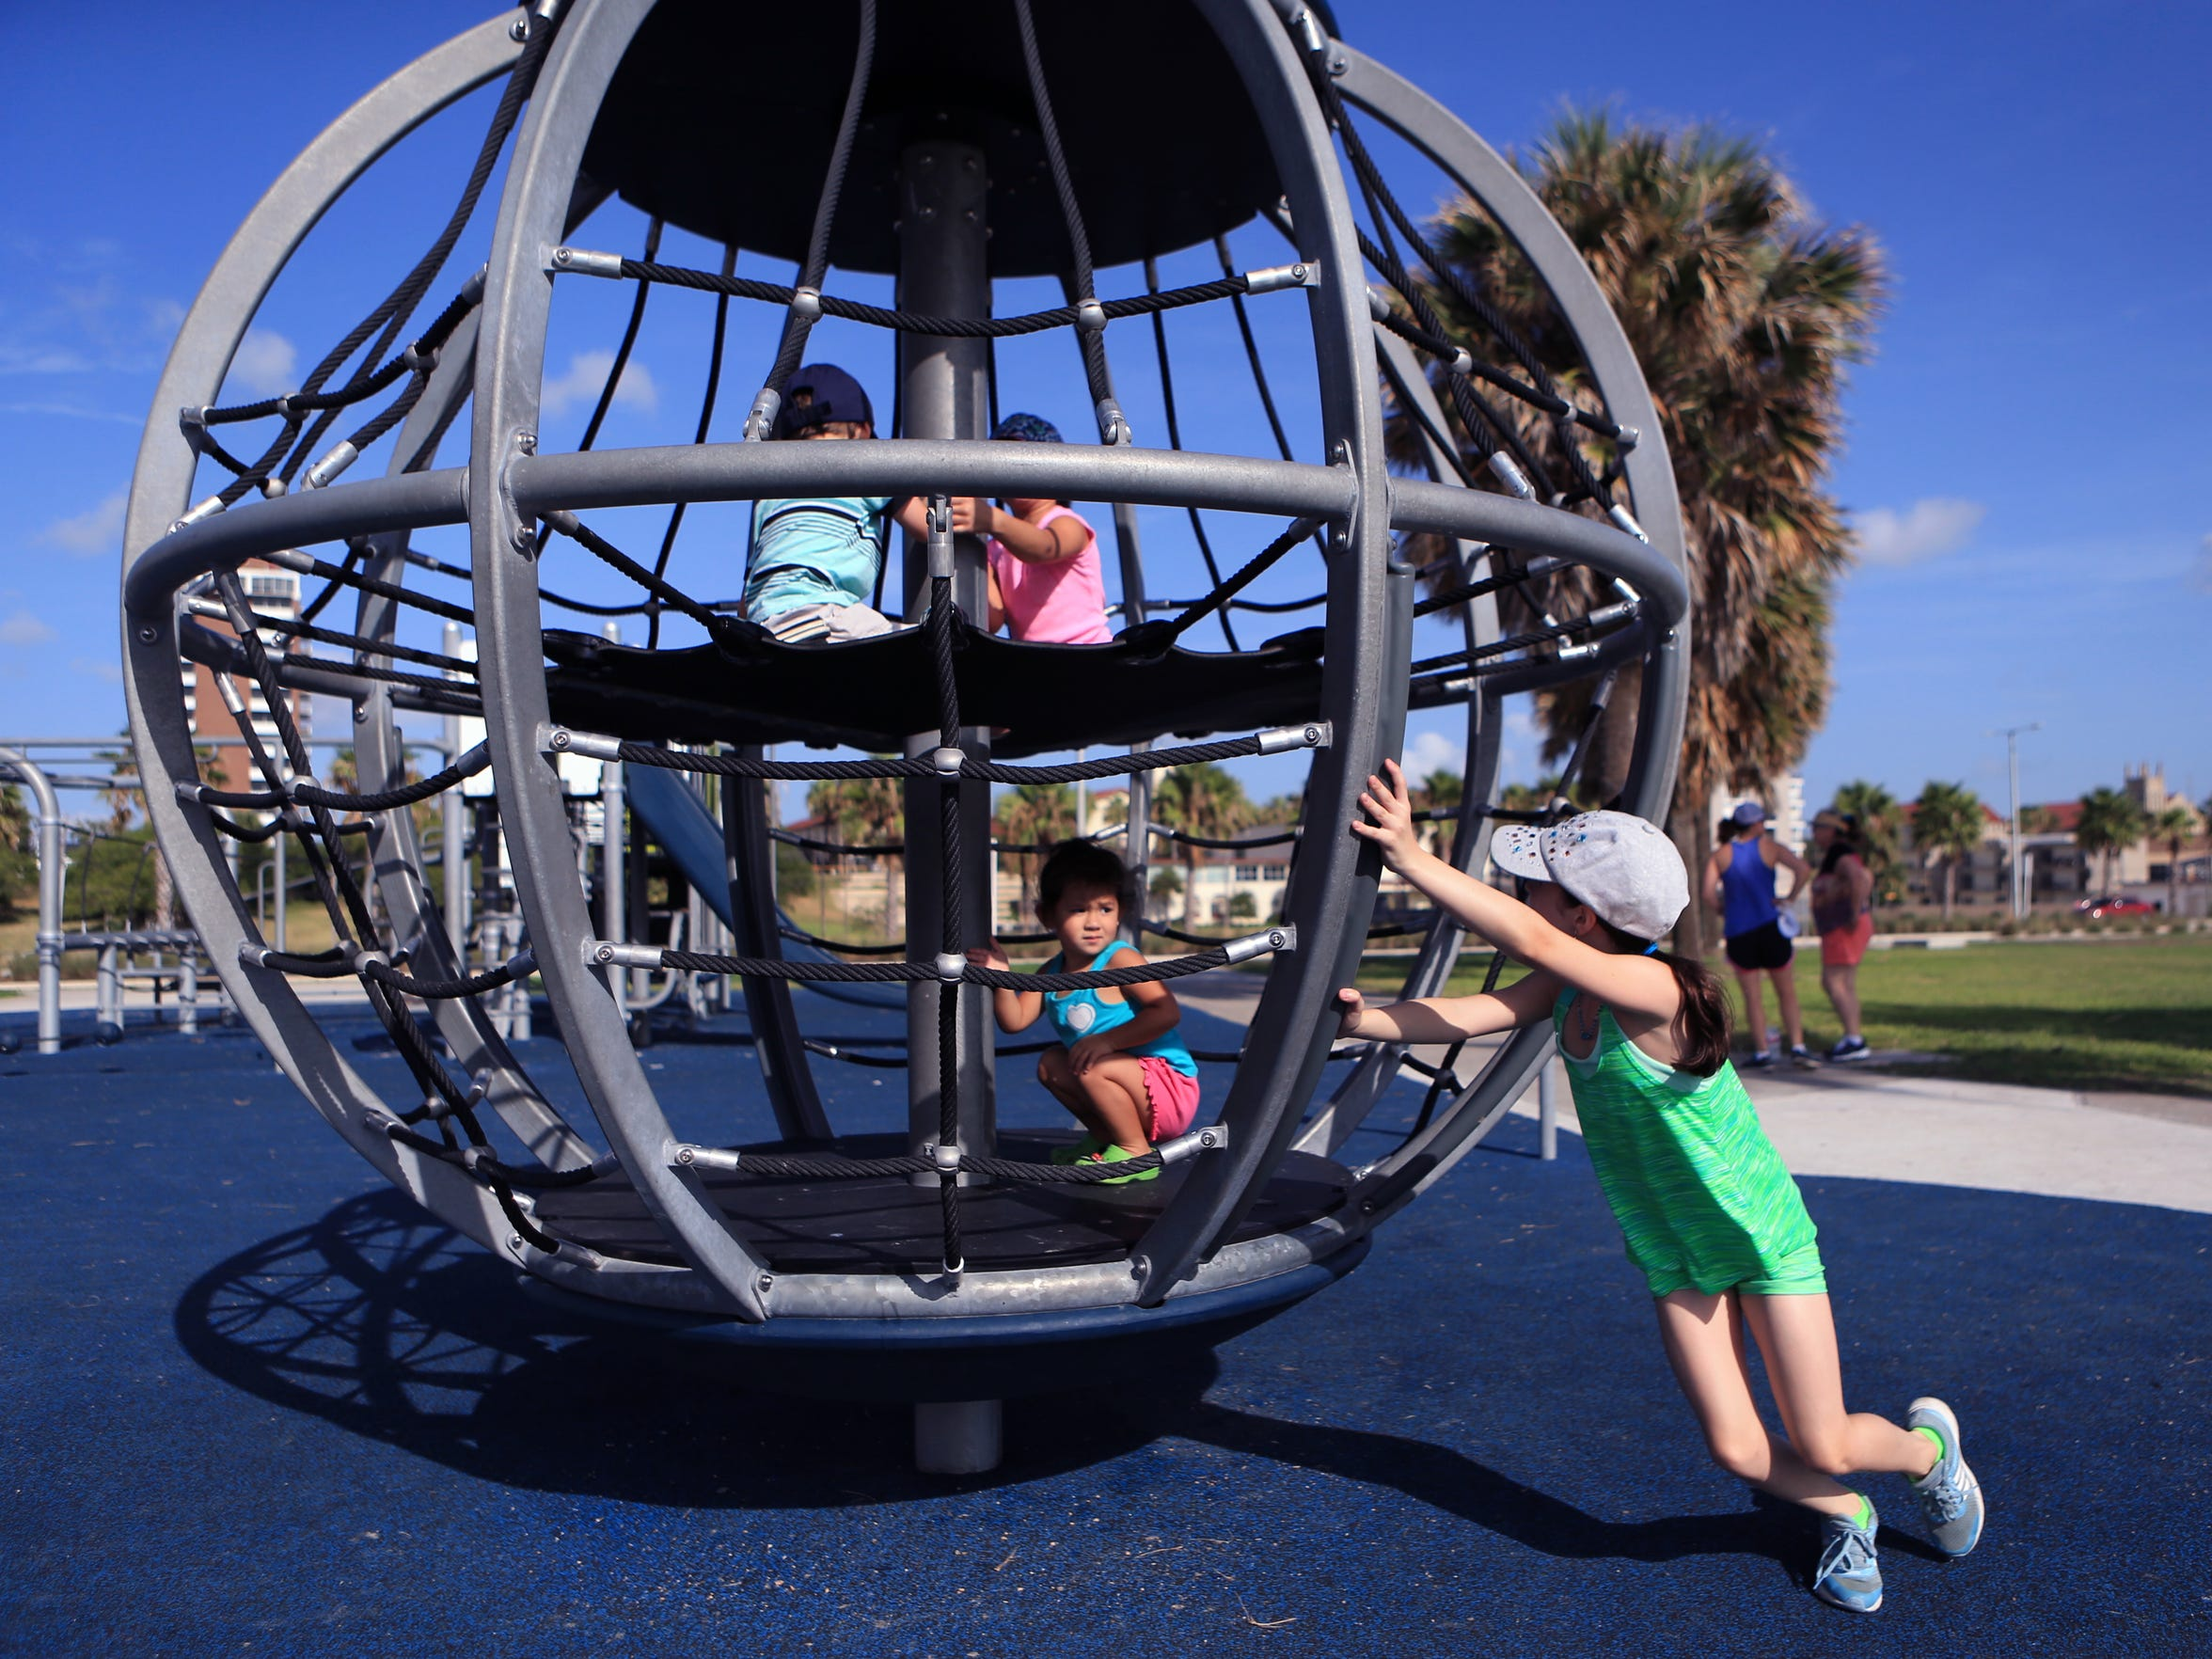 Genevieve Sengler, 10, pushes a play structure for her cousins and sibling in a new play area at the Water's Edge on the Bayfront on Tuesday, July 18, 2017. While some areas, such as the bathrooms, are still under construction, several areas are open for use.